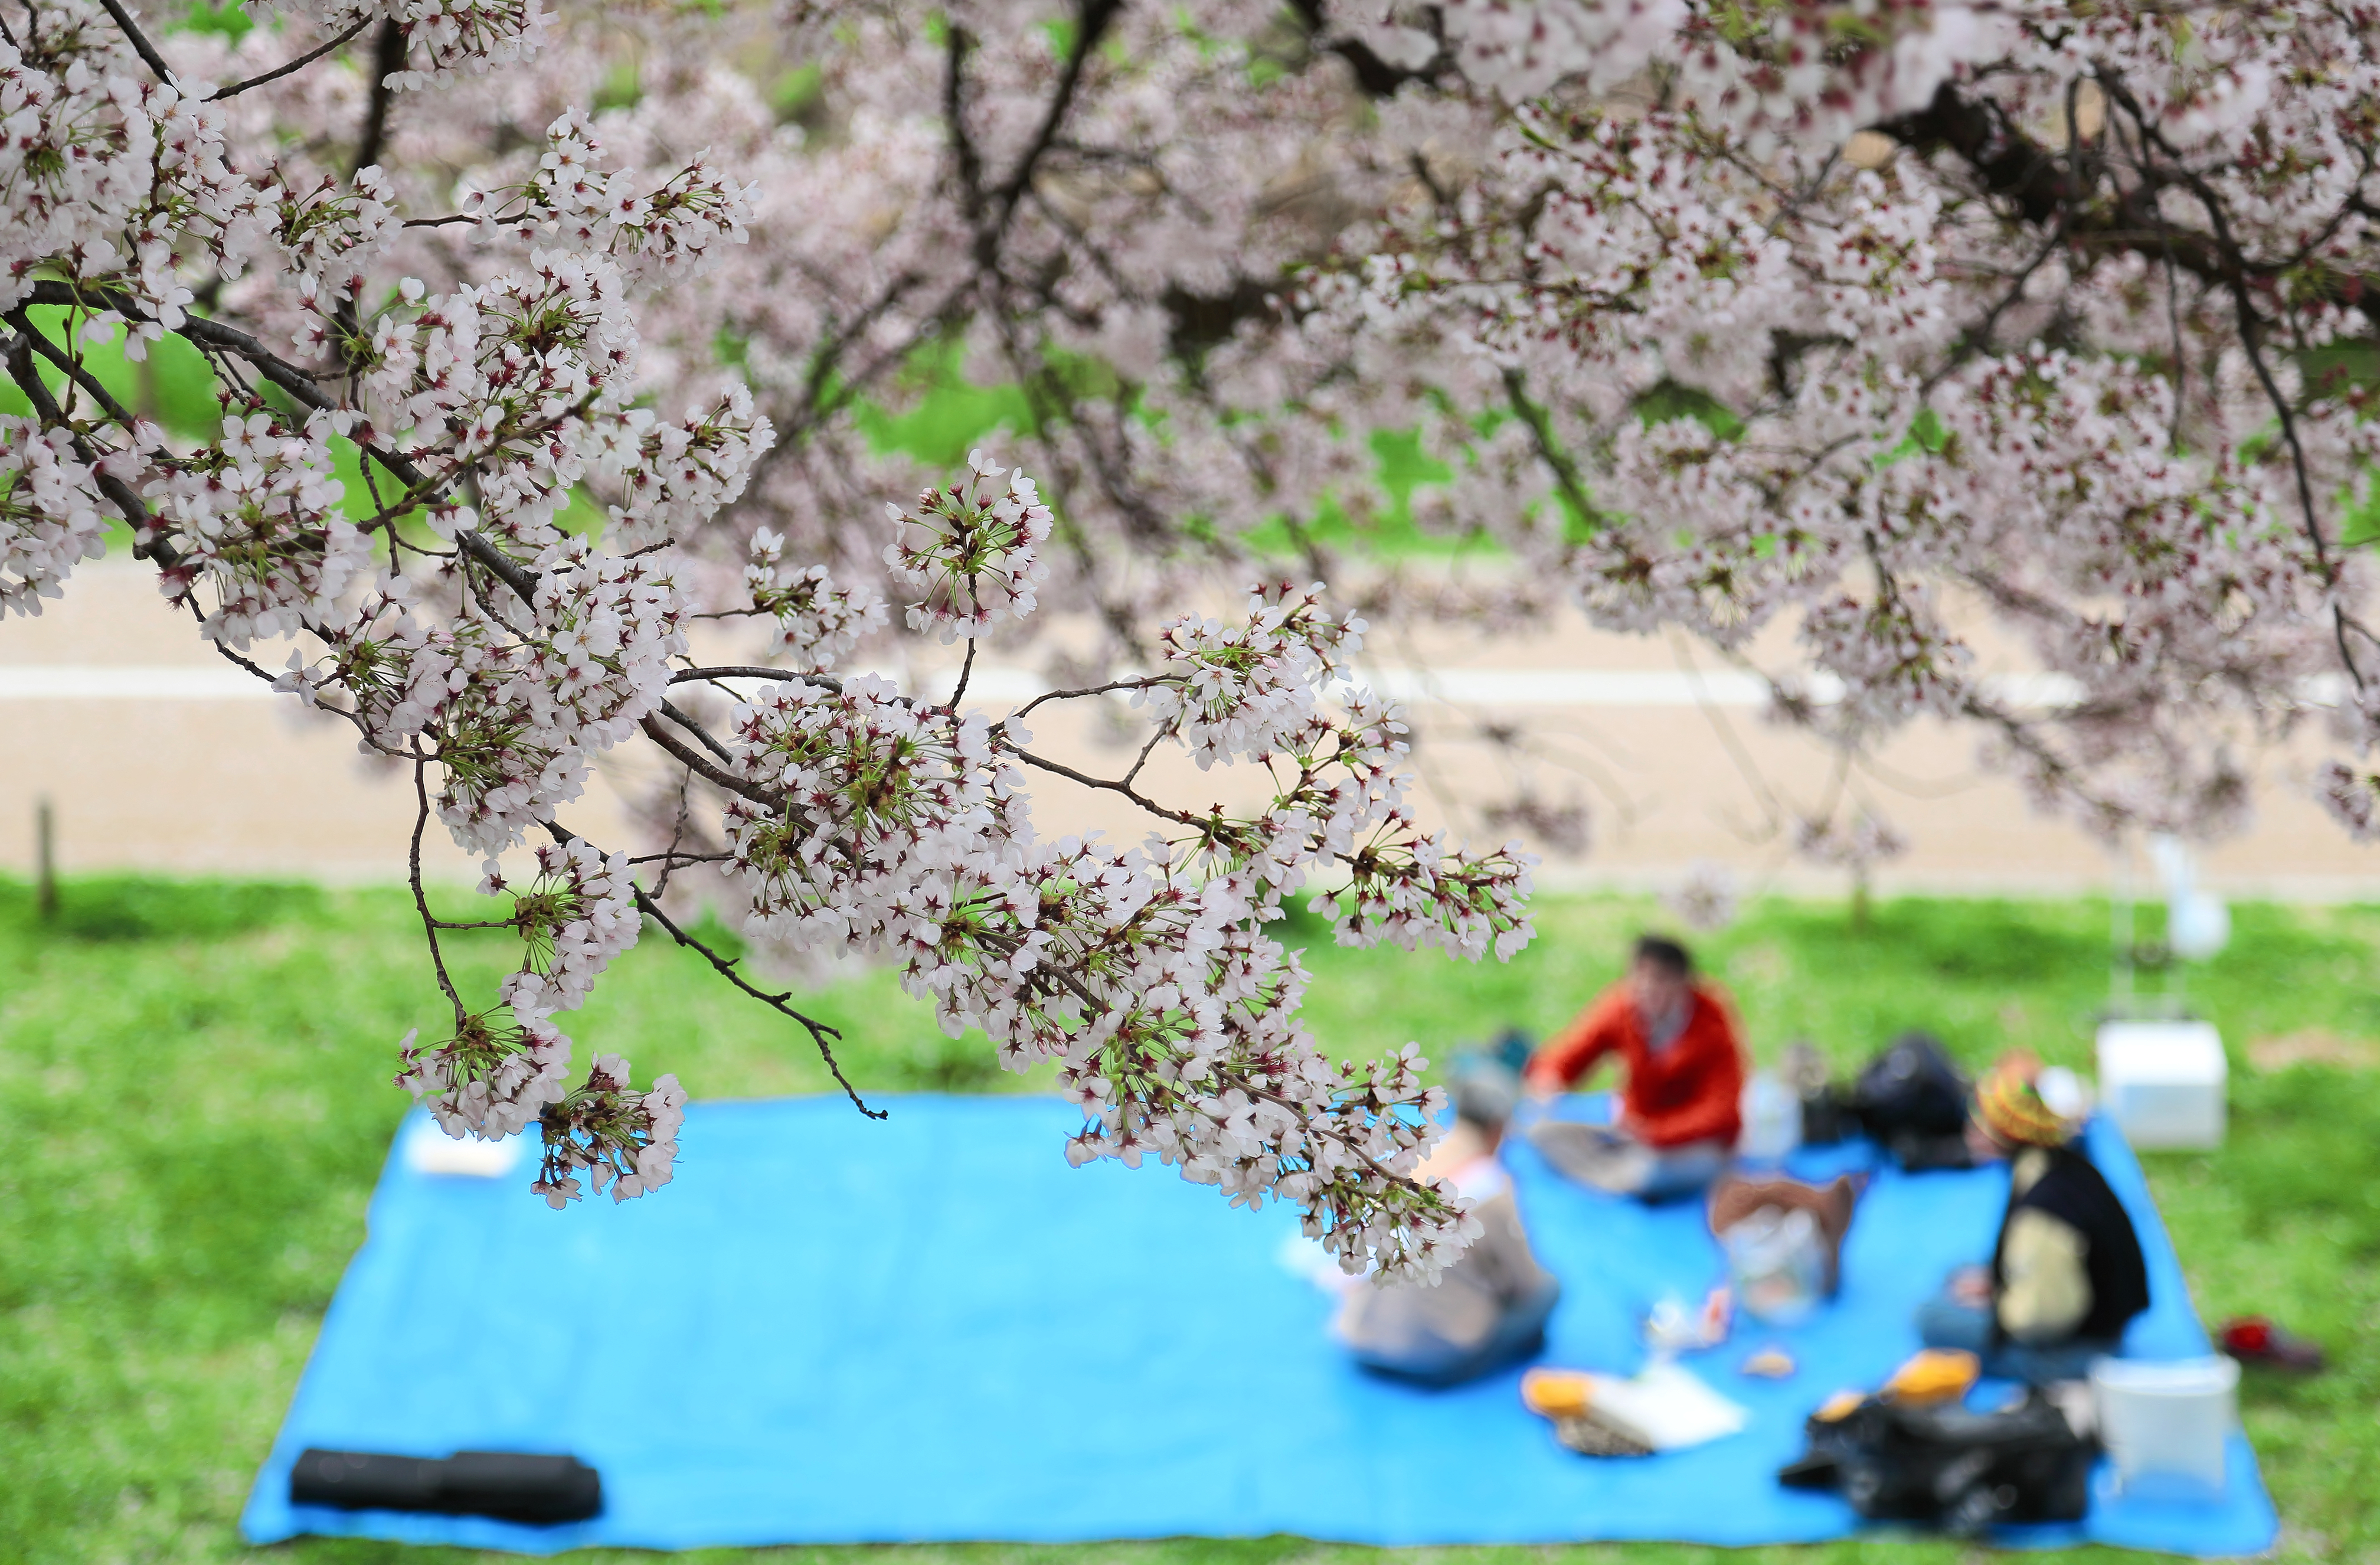 Group of people enjoyoing ohanami cherry blossom viewing during spring time